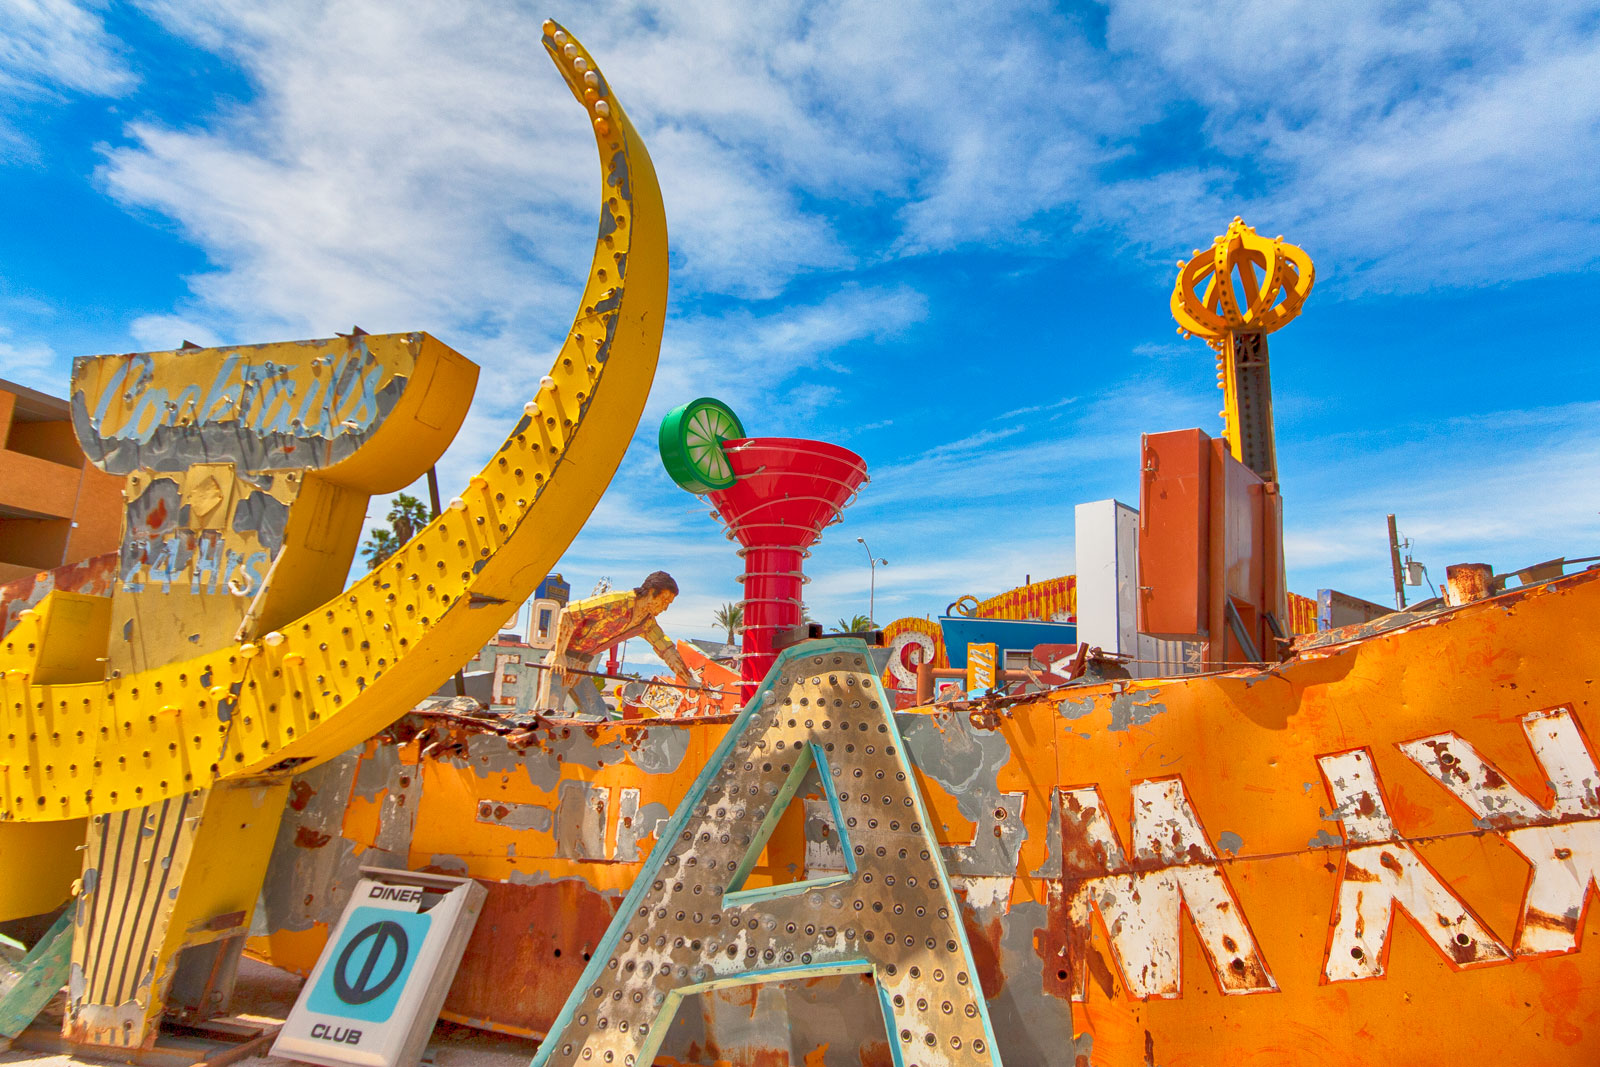 The Boneyard in Las Vegas